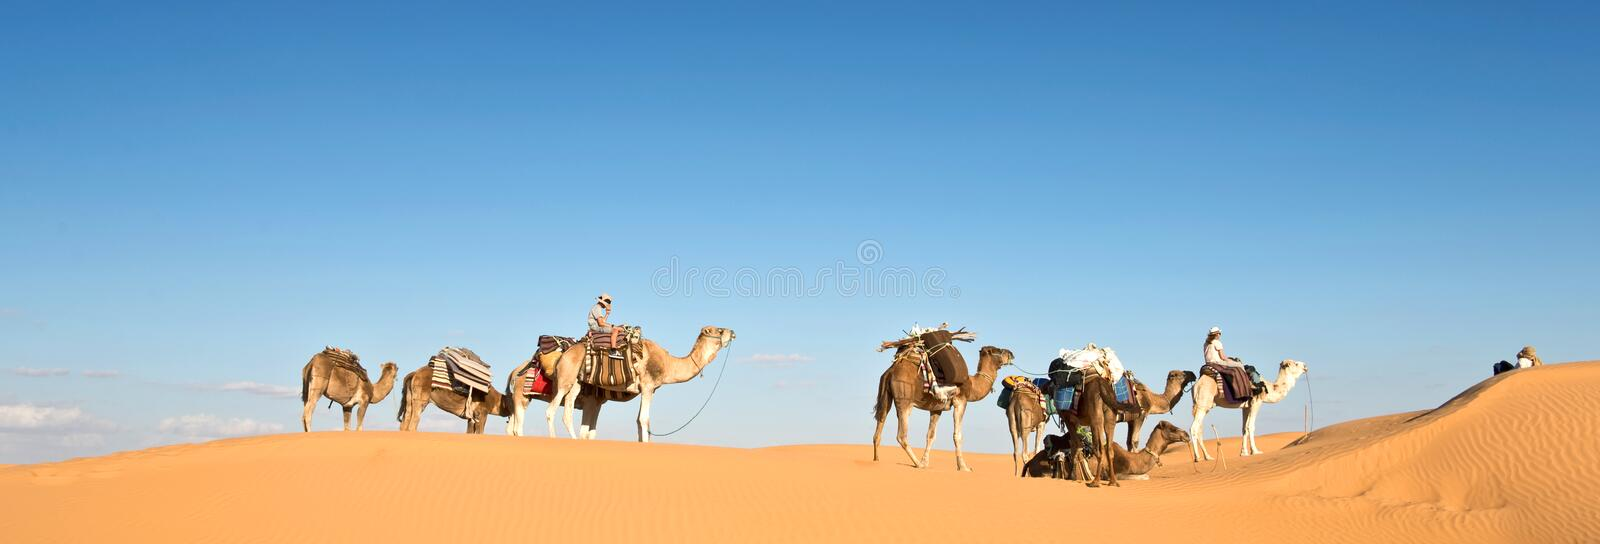 Download Caravan Of Camels In The Sand Dunes Desert Of Sahara, South Tunisia Stock Photo - Image of panoramic, adventure: 118776286